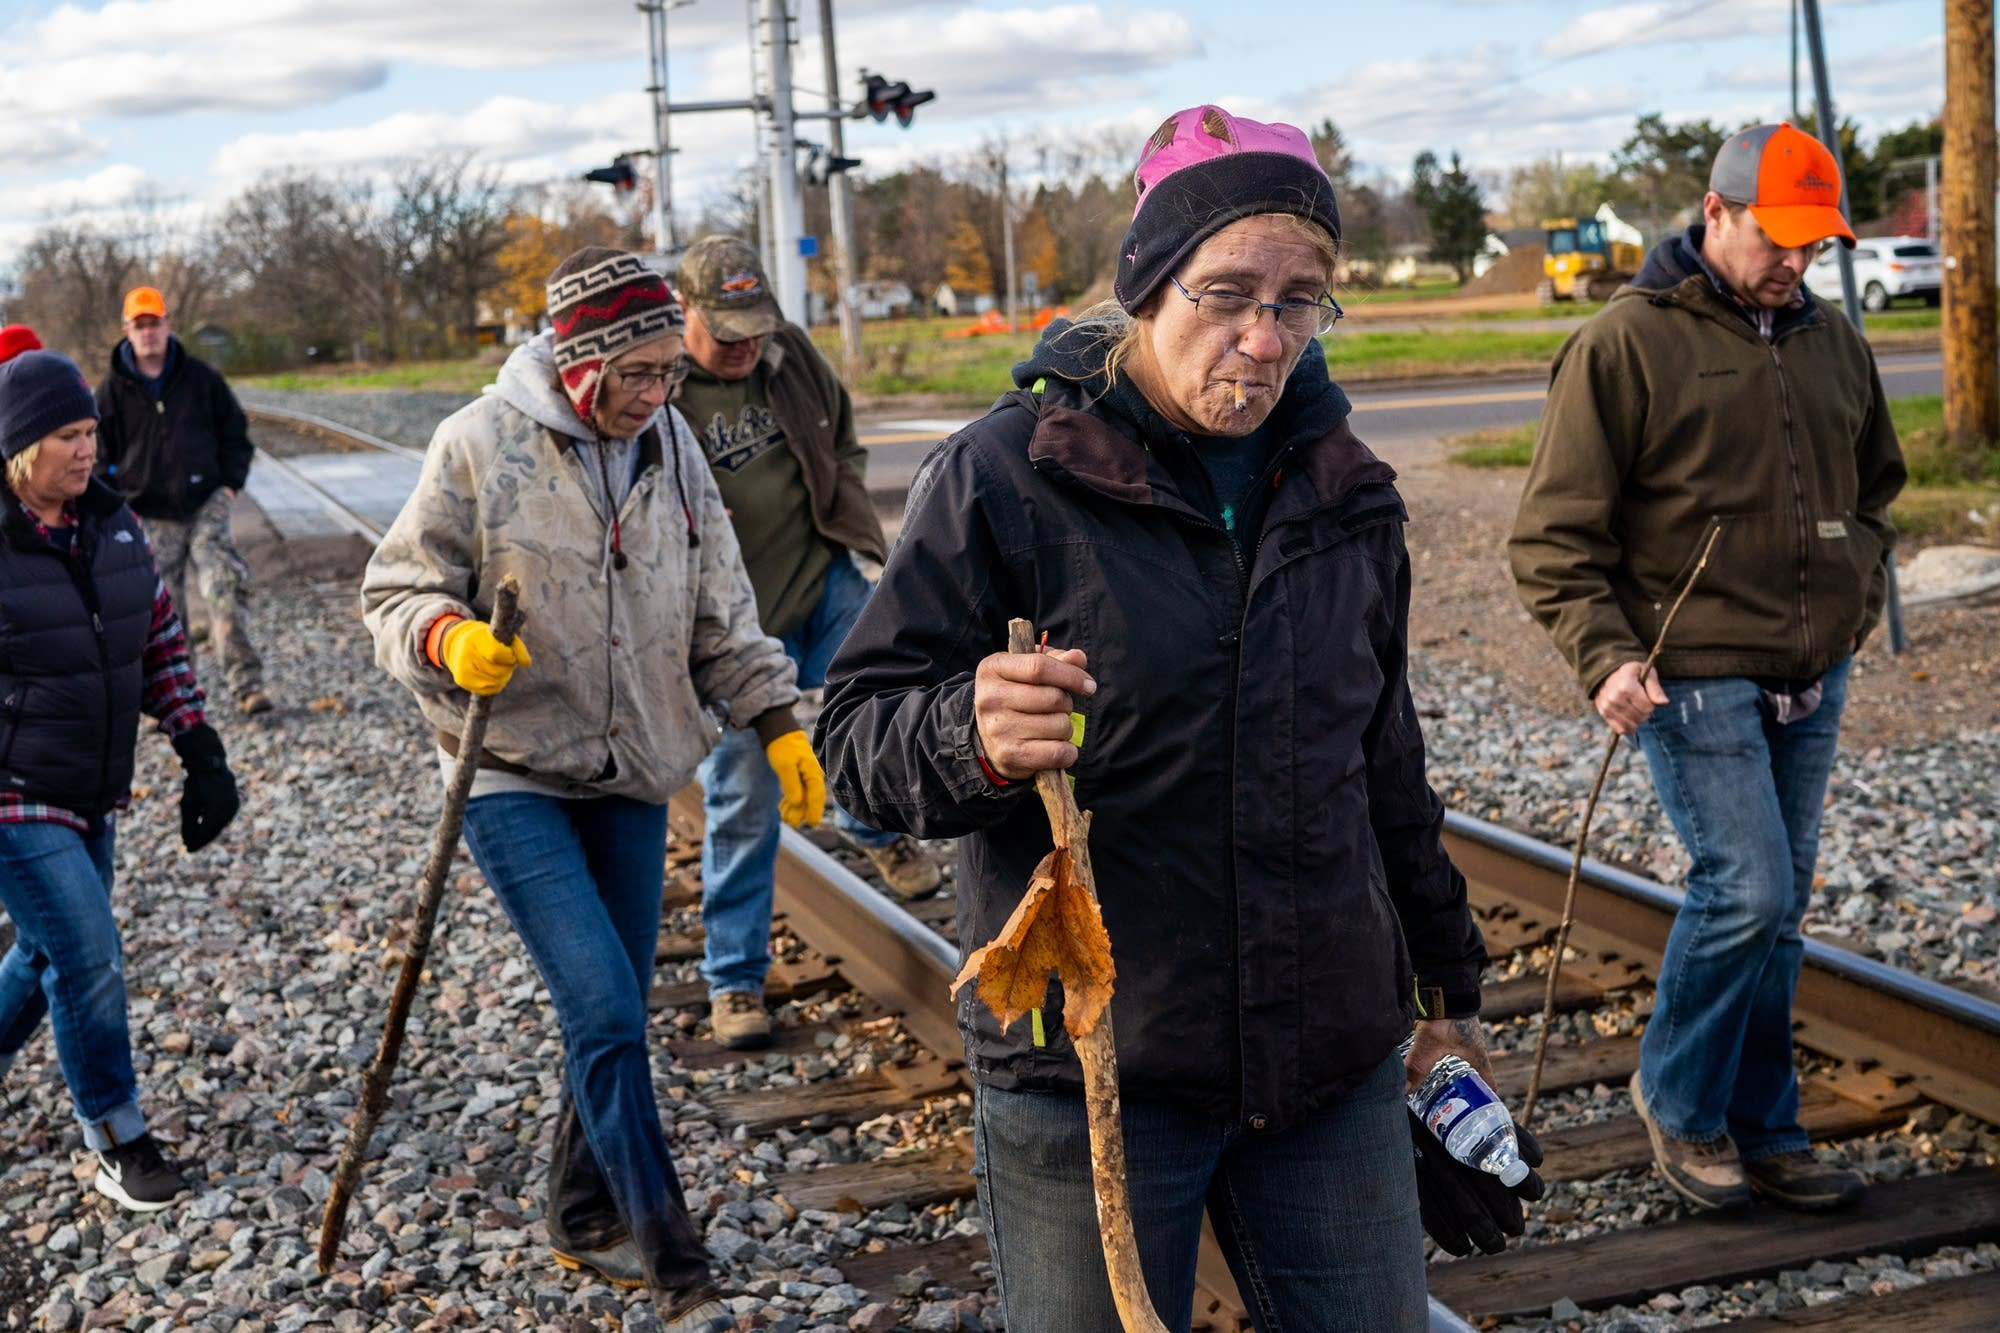 Stacy Quist of Bruce, Wisc. walks along train tracks.